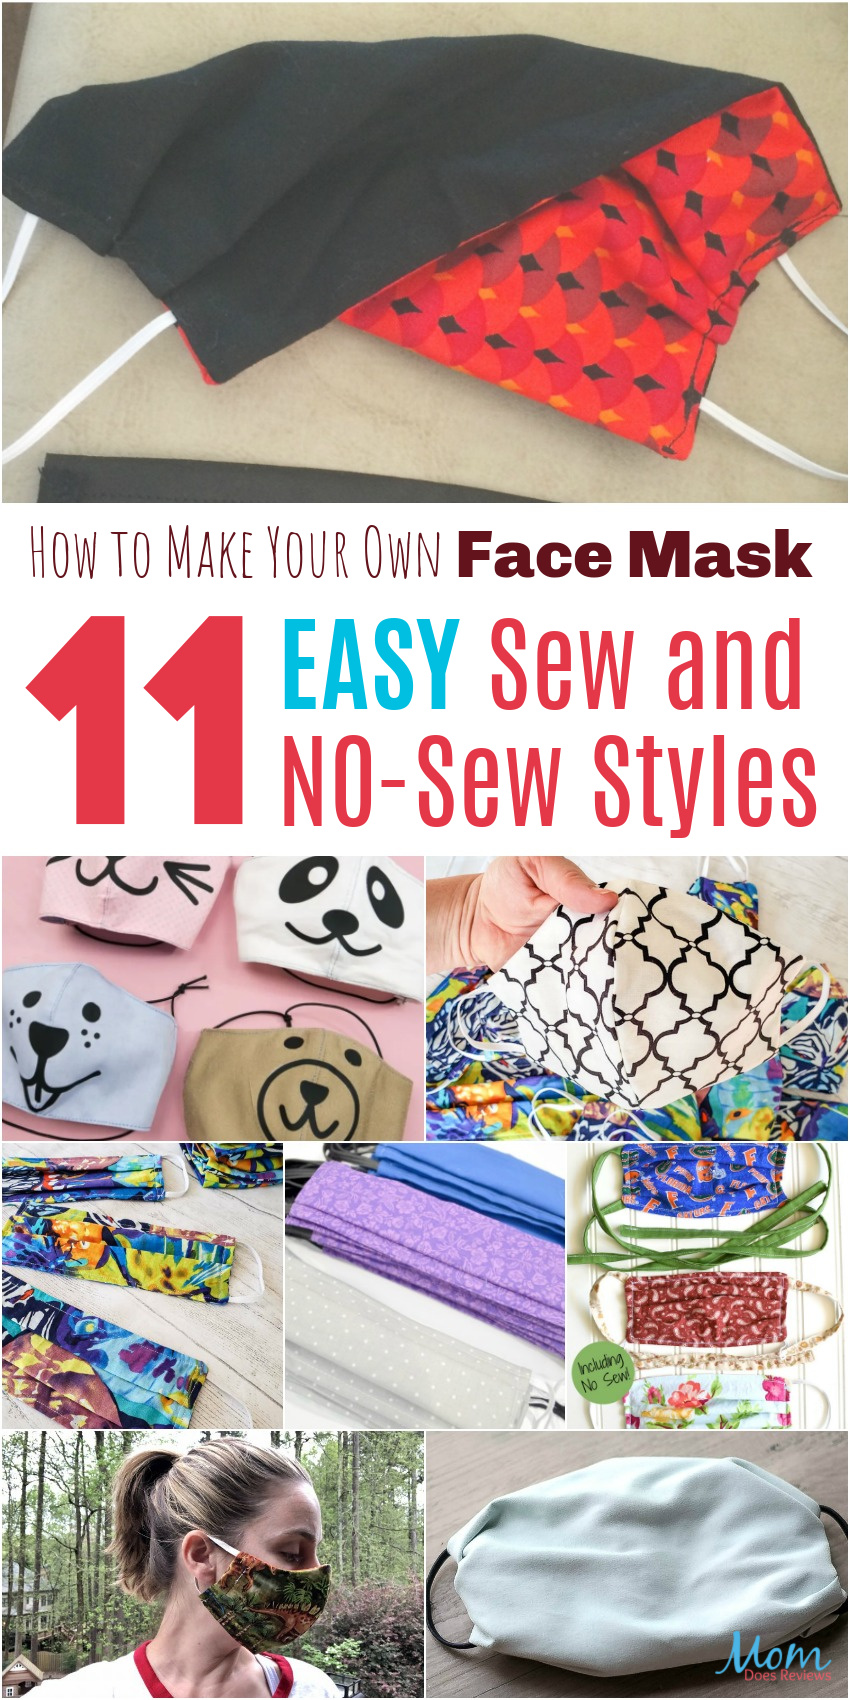 How to Make Your Own Homemade Face Masks : 11 Easy Sew and No-Sew Styles